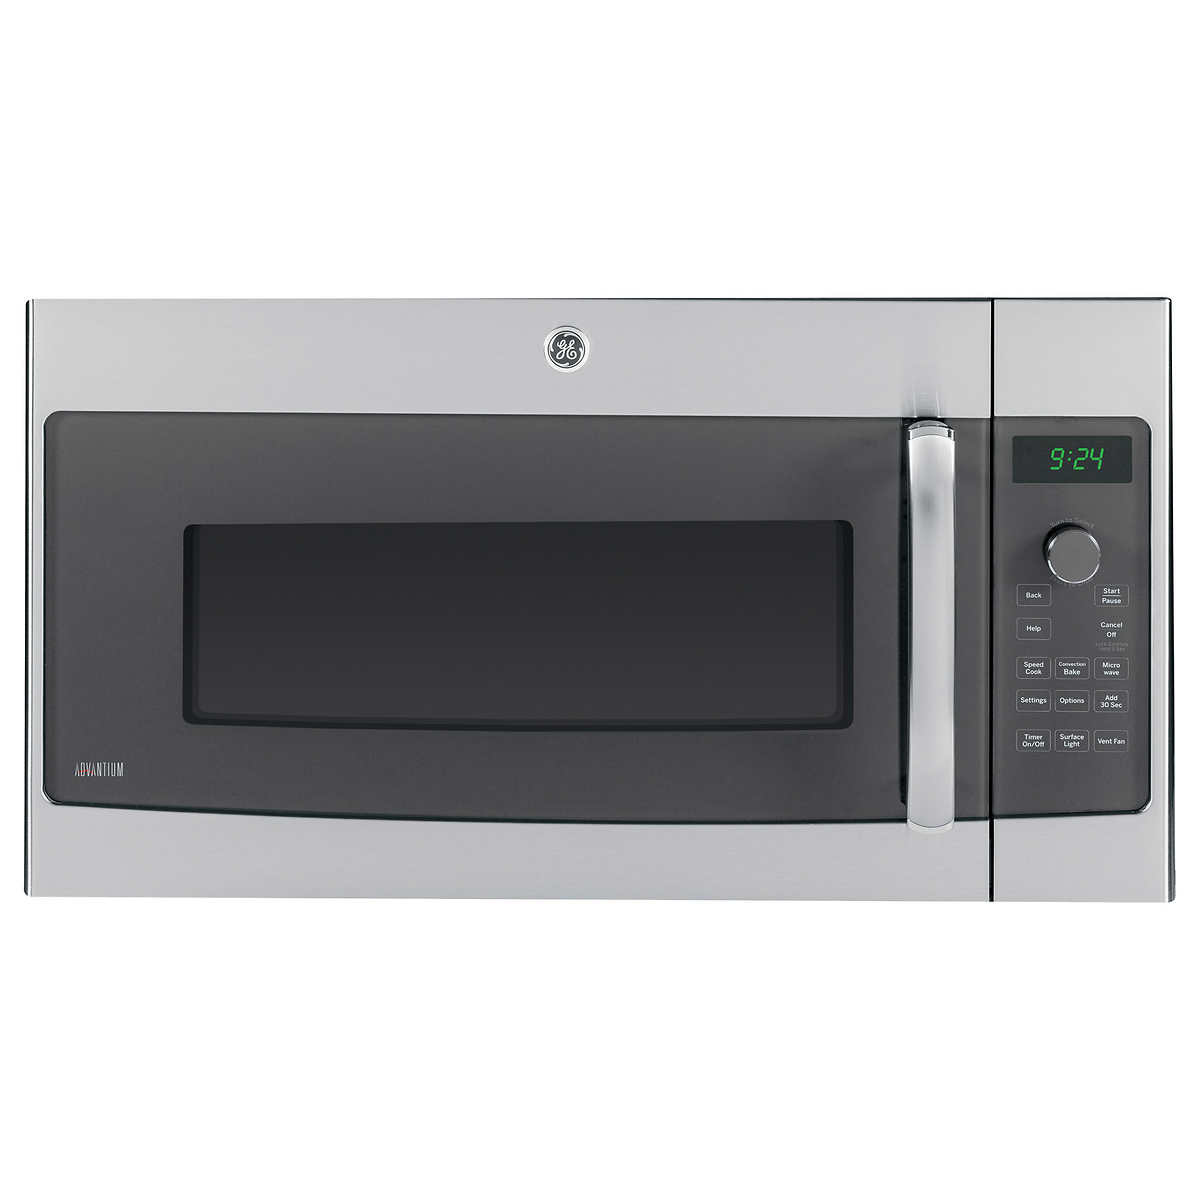 Ge 1 7 Cuft Over The Range Microwave Oven With Advantium Technology In Stainless Steel